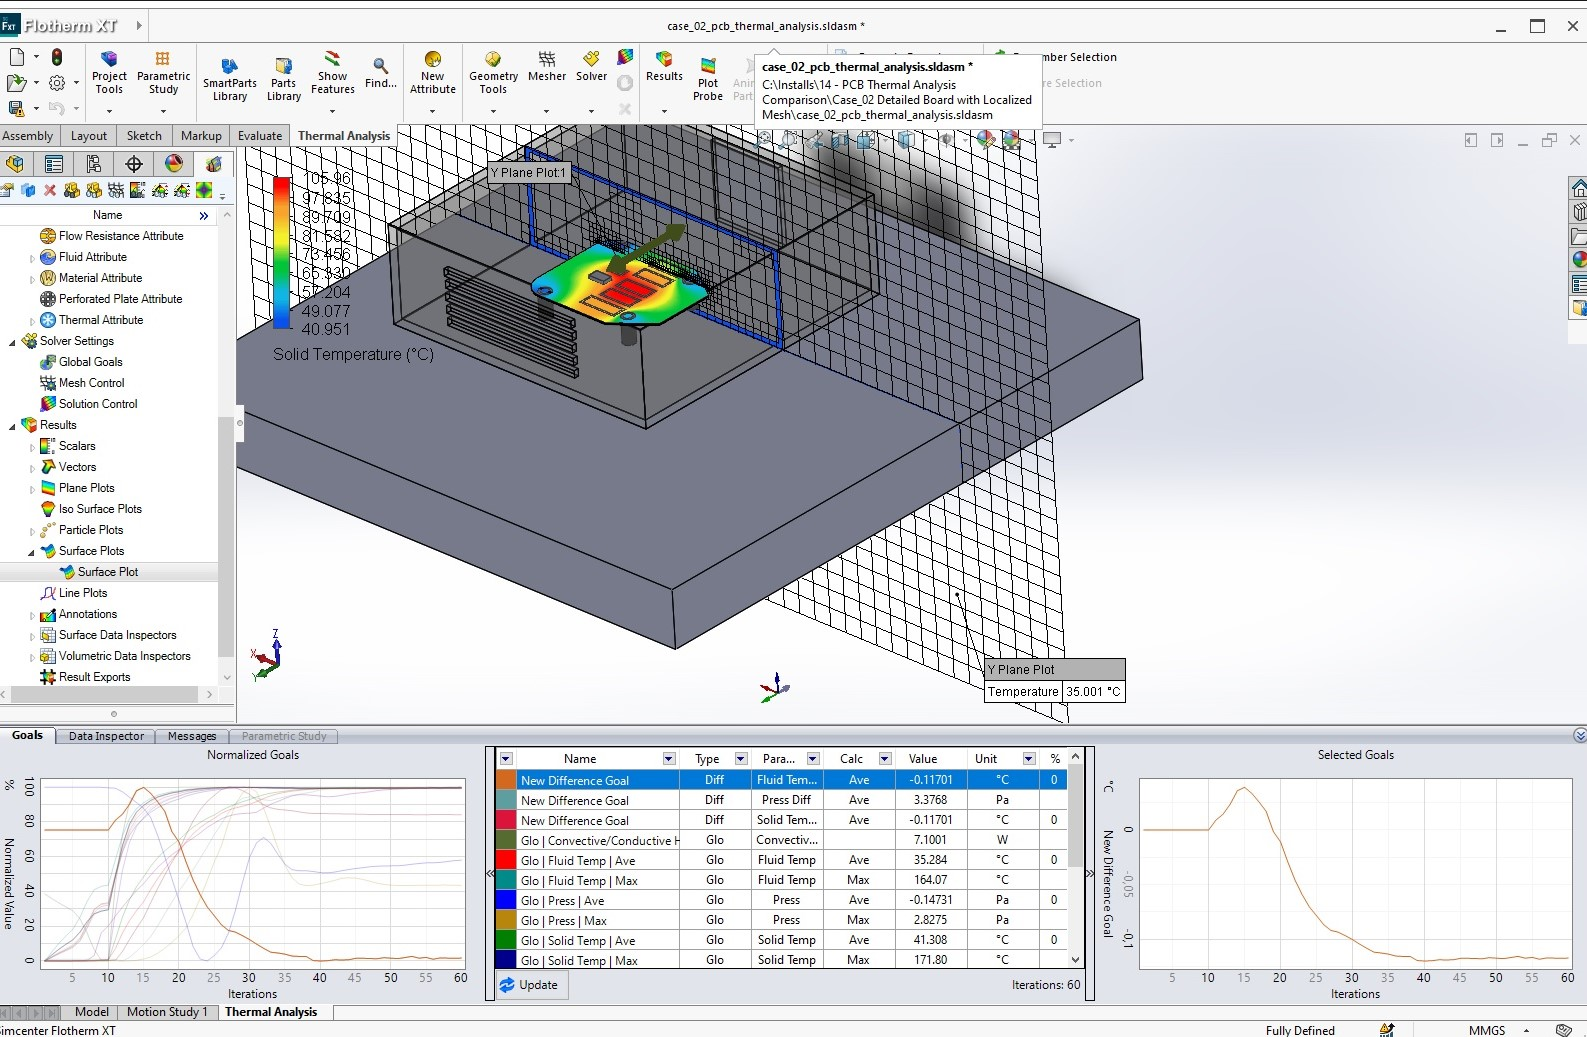 Working with Siemens Simcenter Flotherm XT 2021.1 Win64 full